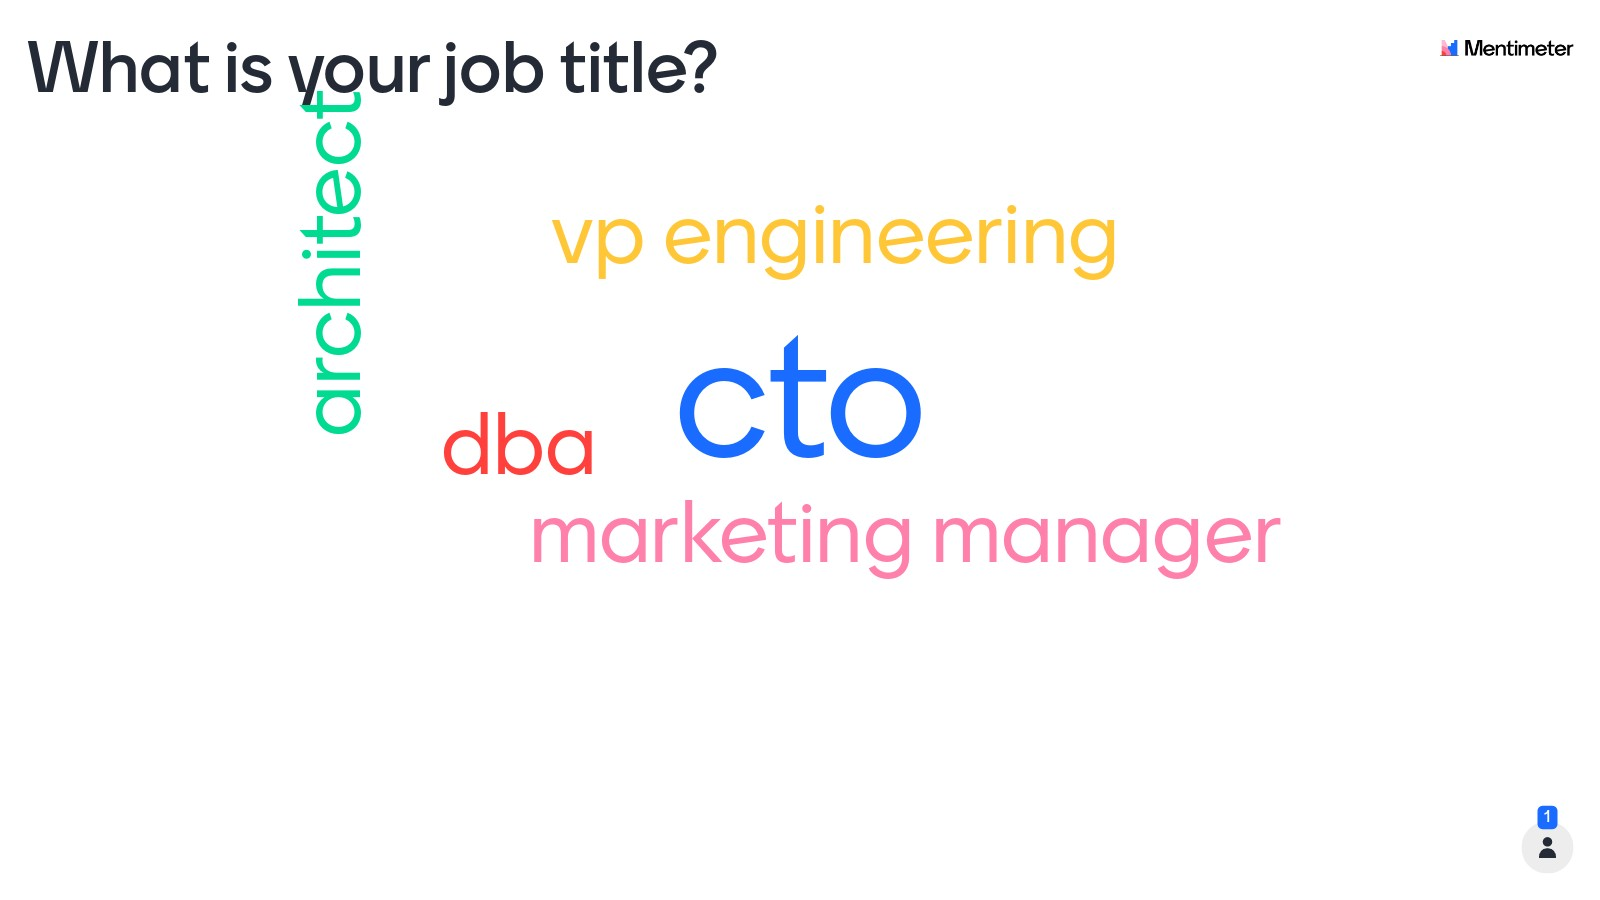 What is your job title?